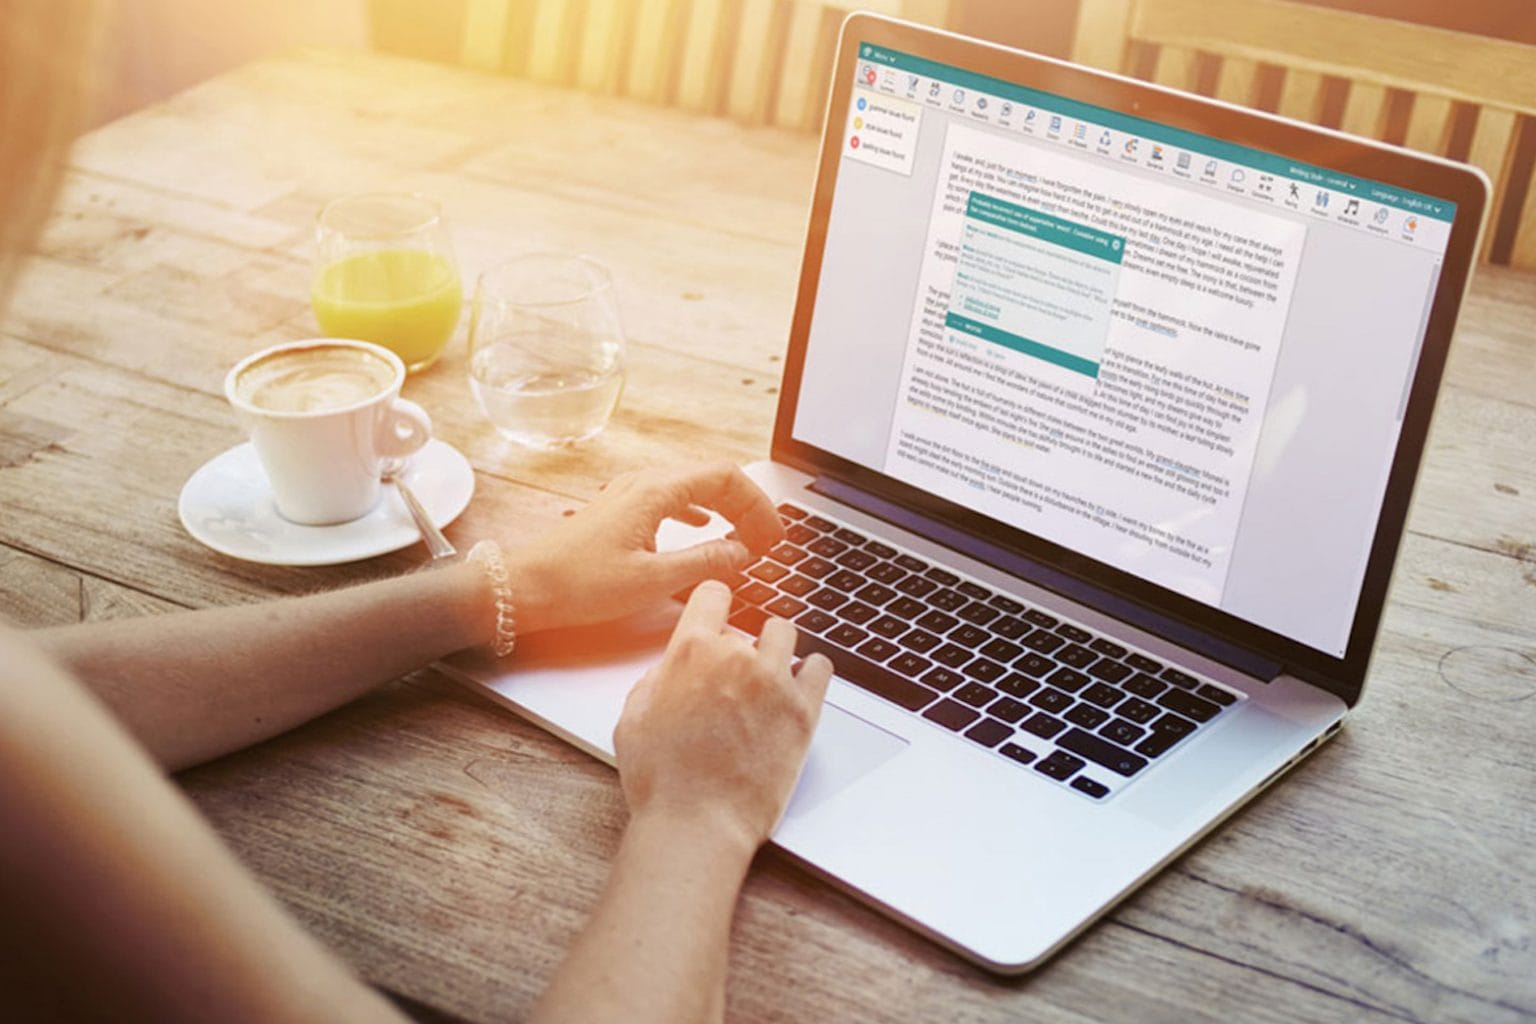 Learn how to spellcheck, write and improve with this lifetime ProWritingAid bundle